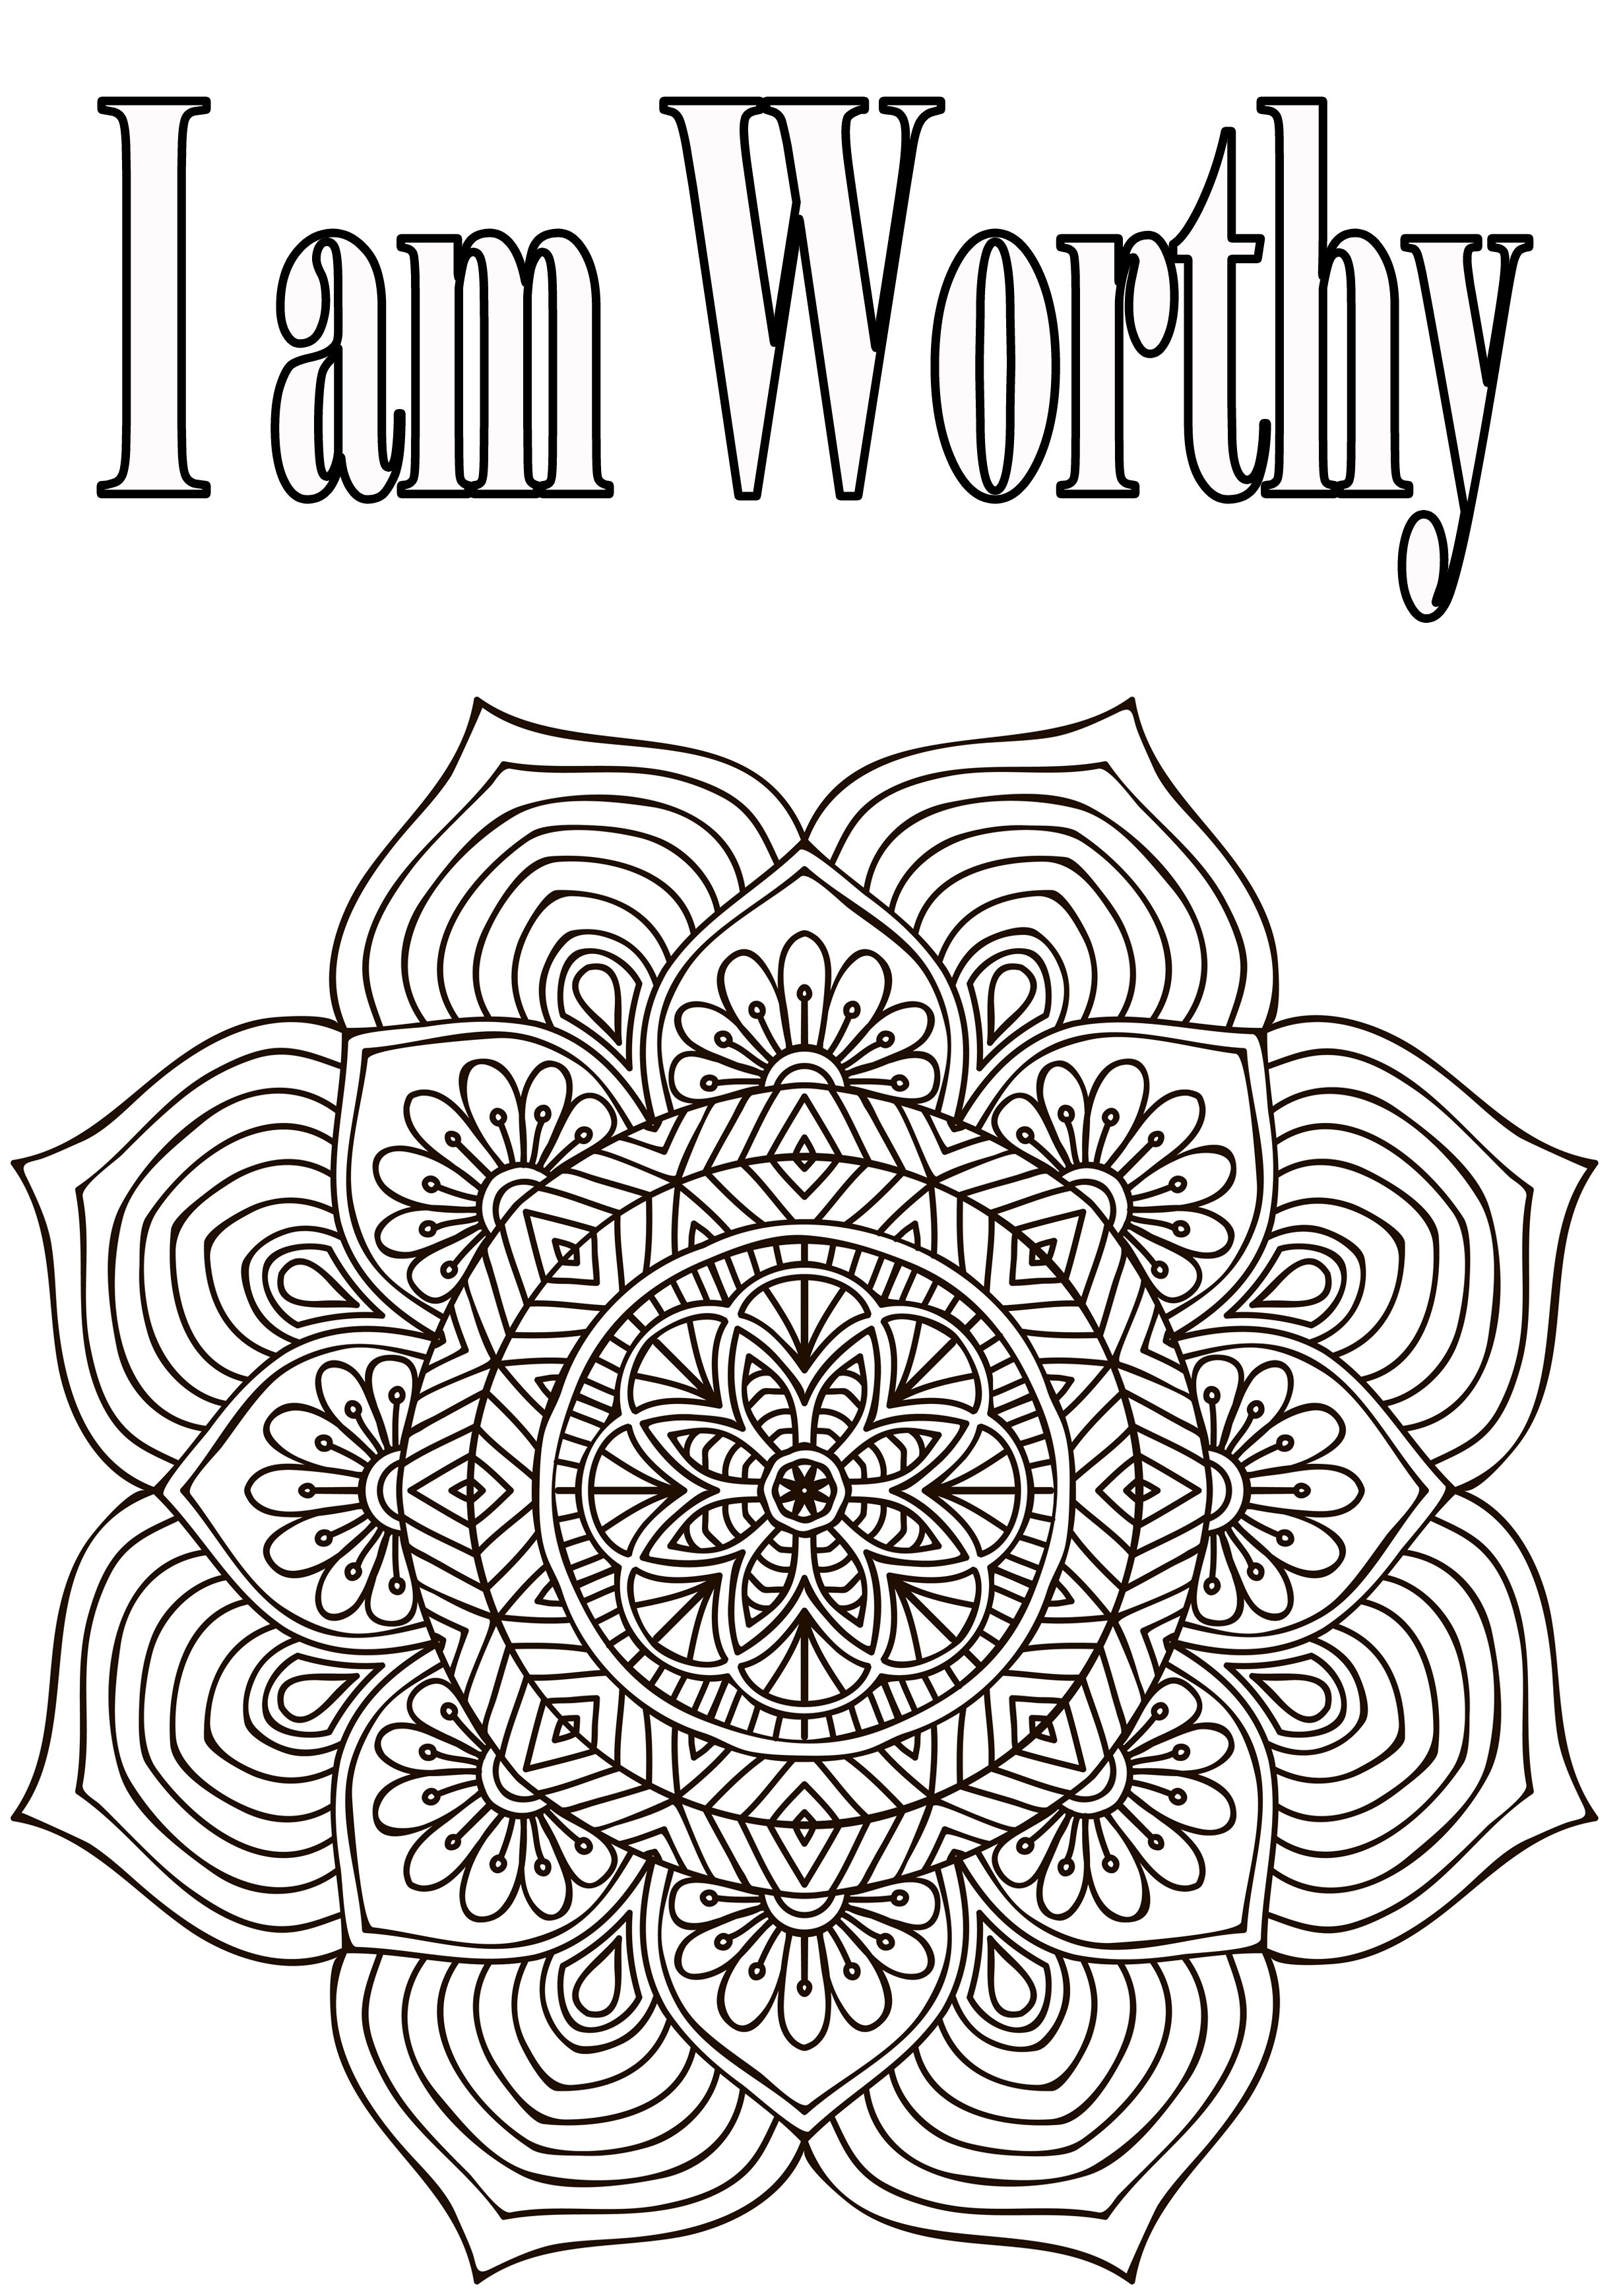 gratitude coloring pages Color Me Happy | The Letters of Gratitude | coloring quotes  gratitude coloring pages